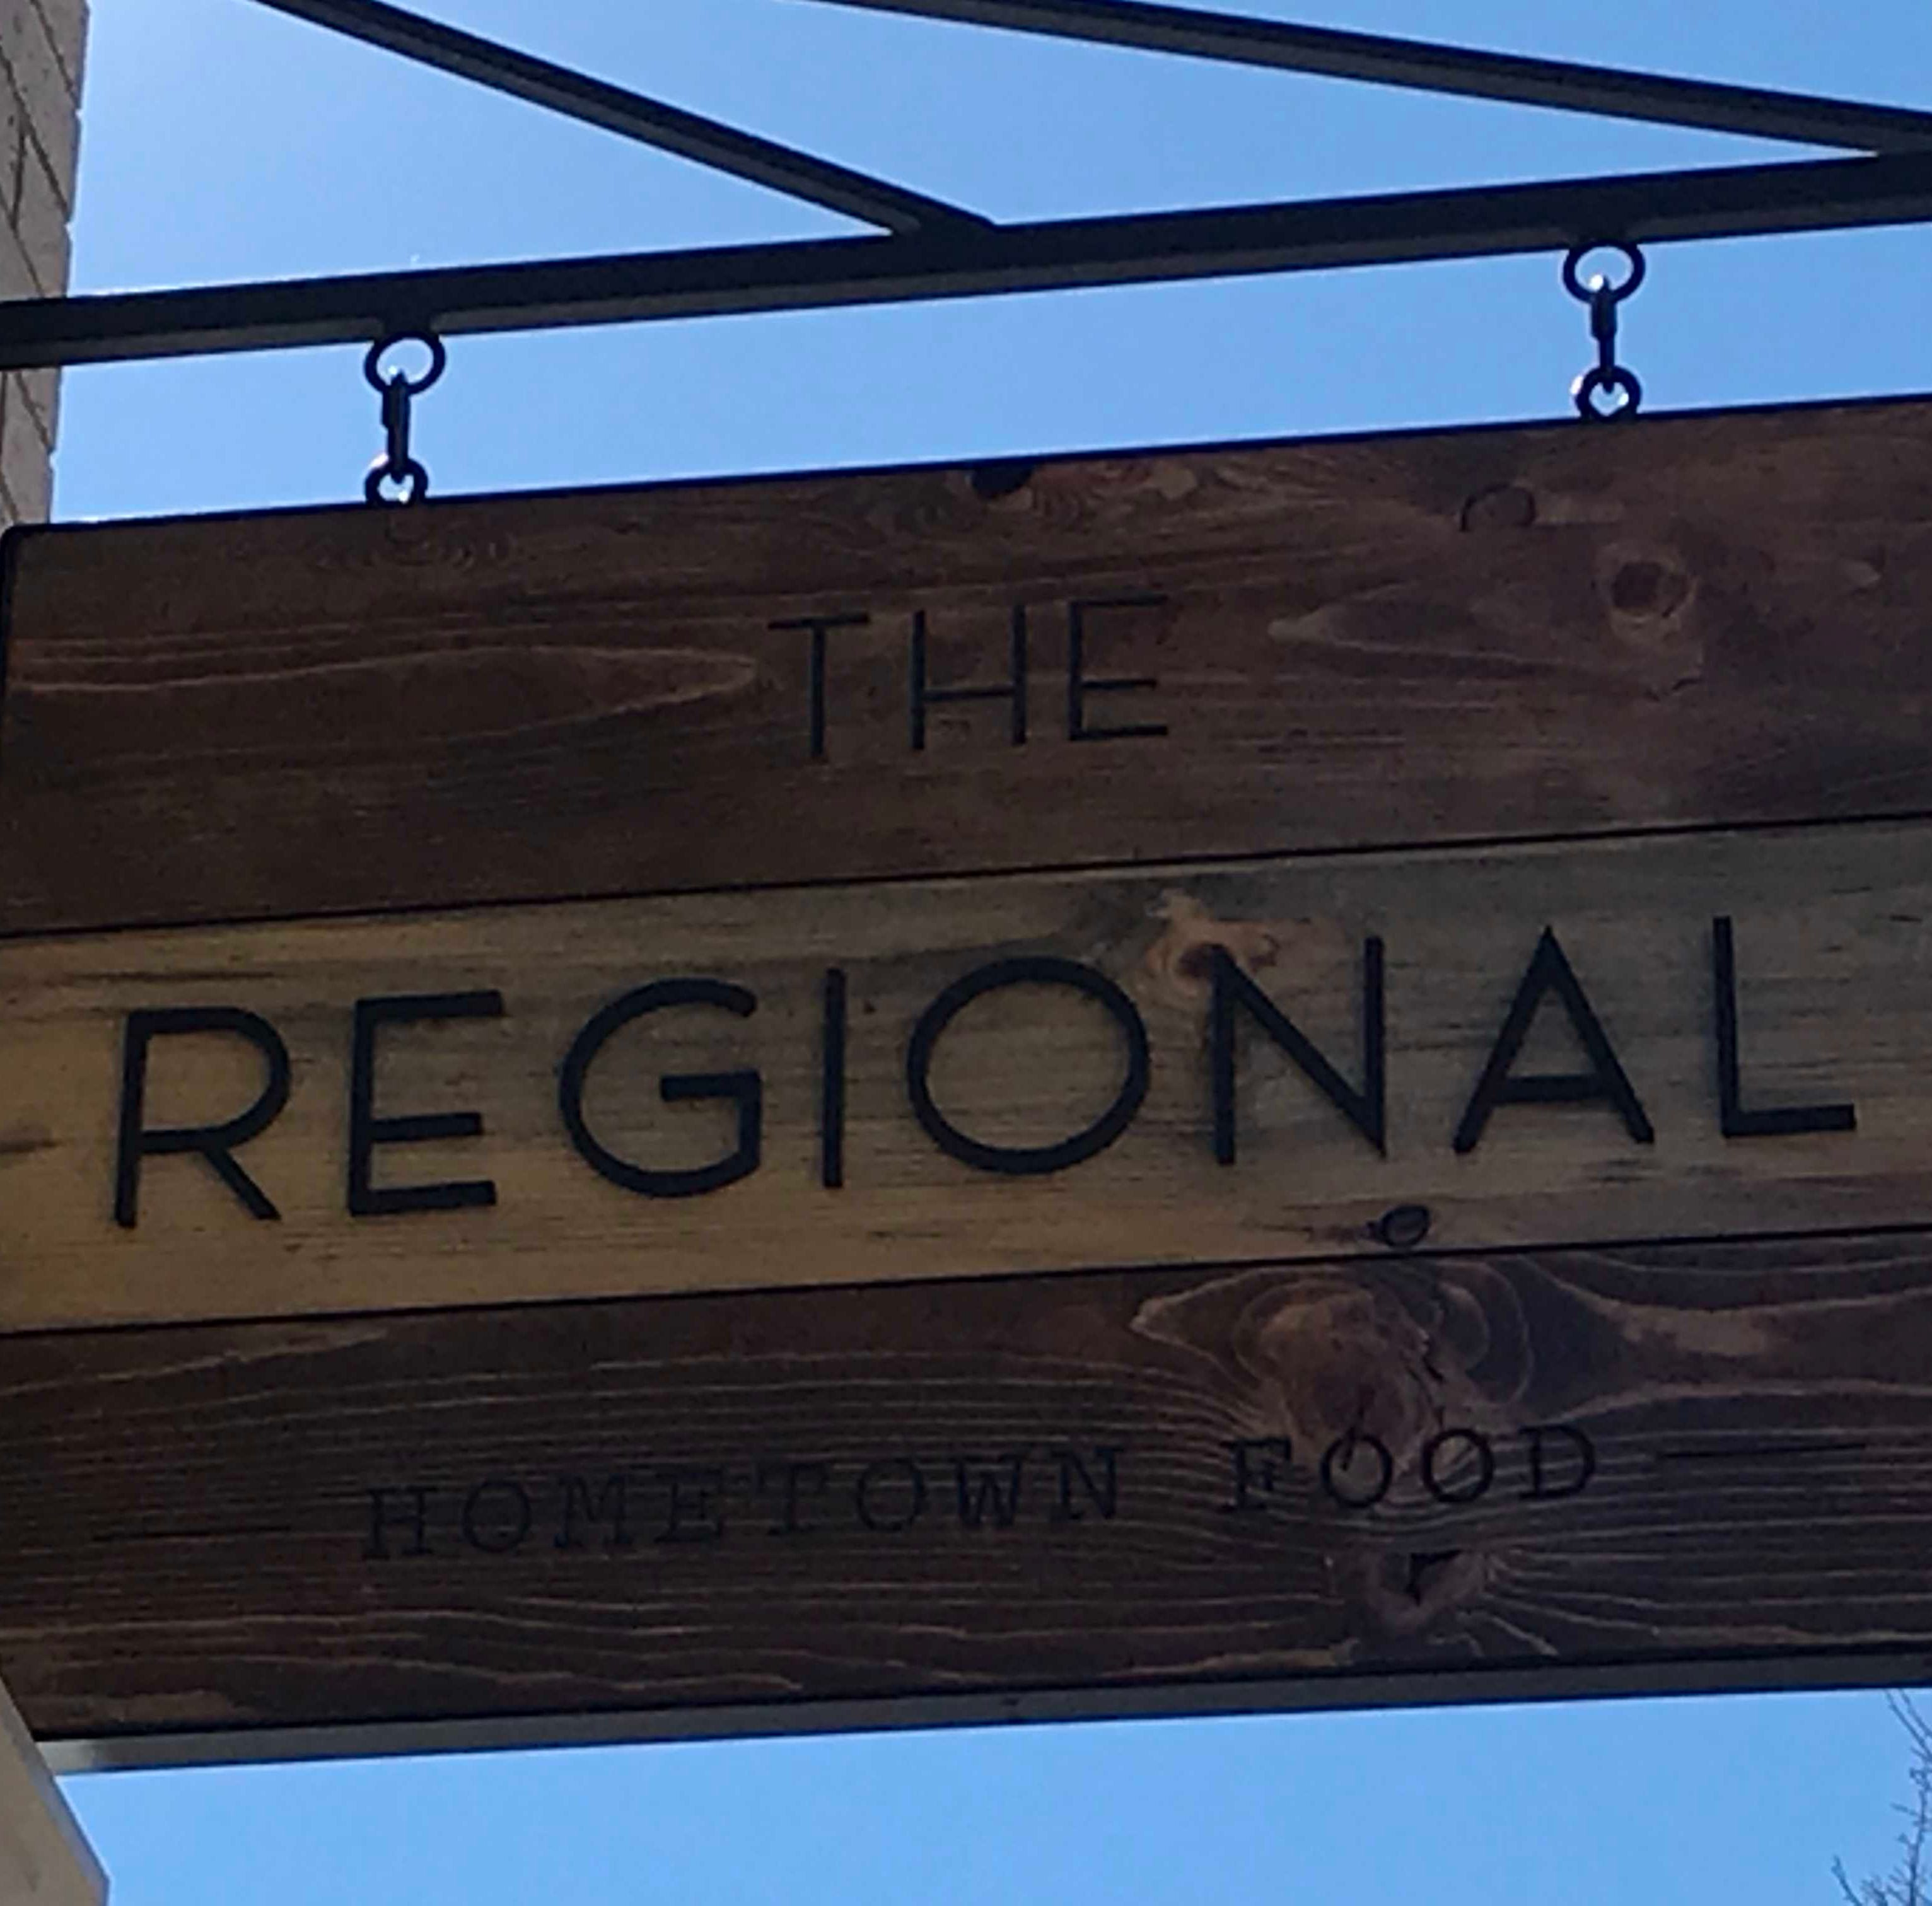 The Regional restaurant opens in Fort Collins